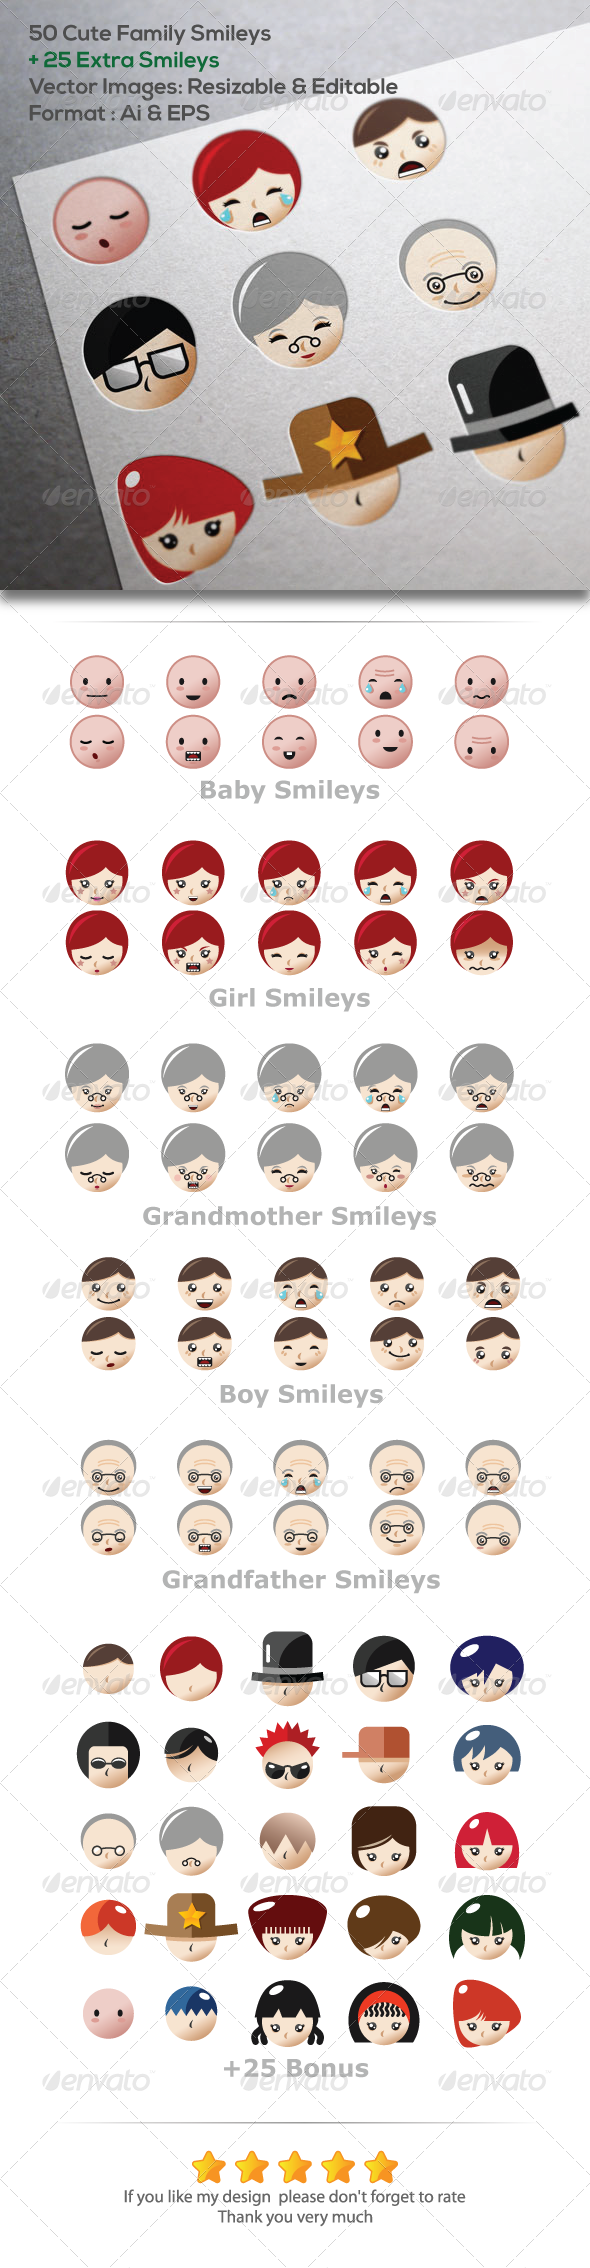 GraphicRiver 50 Family Smileys Vector Images 5711614